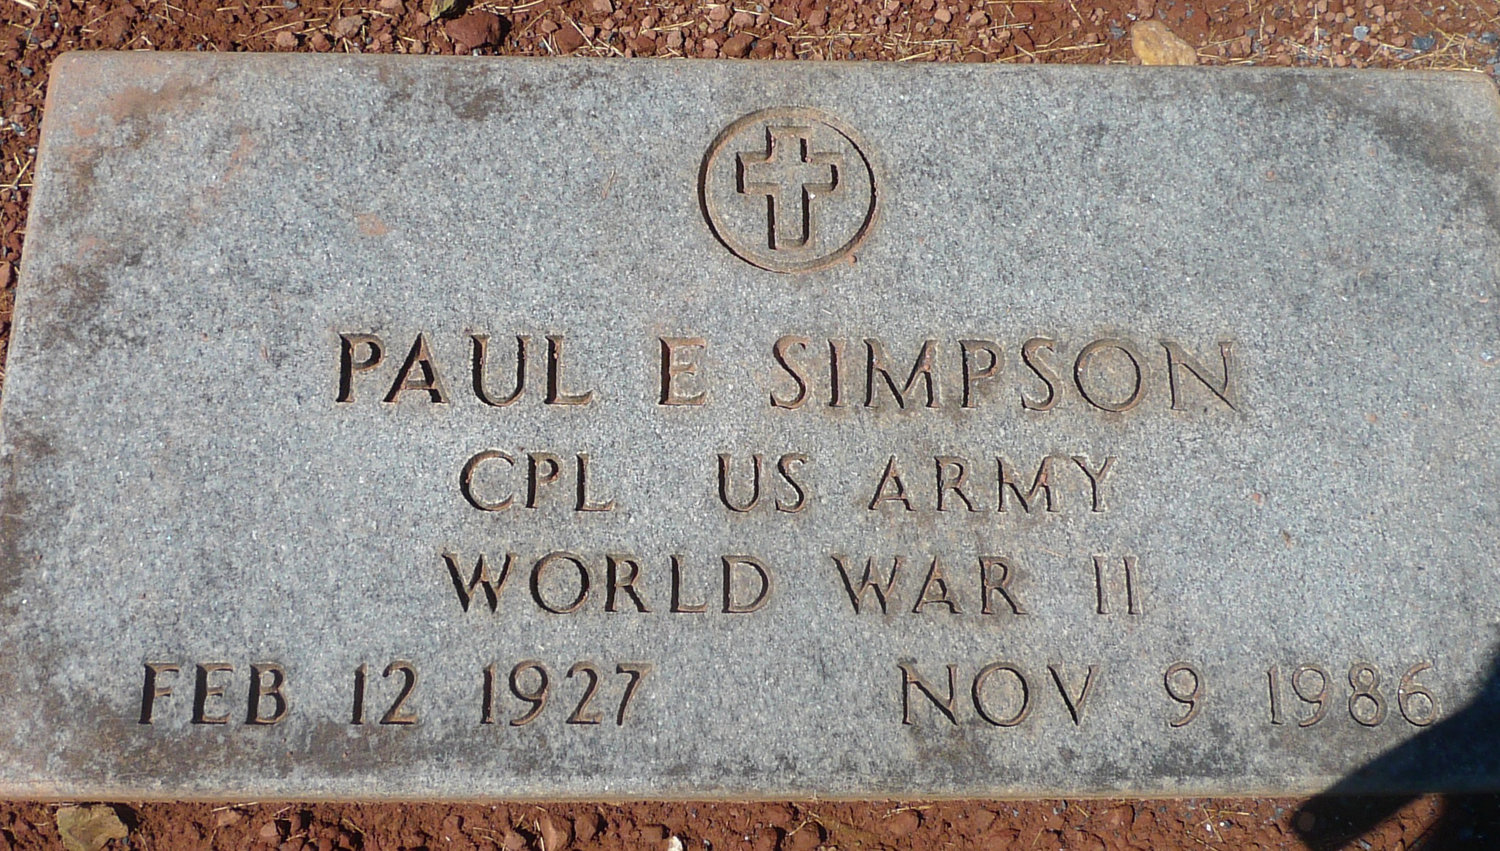 The grave of Paul E. Simpson, also buried in East Middletown Cemetery, has the headstone provided by the Veterans Administration that Lewis Whittle is trying to get for his uncle, William Howard Hunter. The headstone also comes in other varieties, such as bronze, and can be upright as well as flat. Simpson is Lewis Whittle's father.